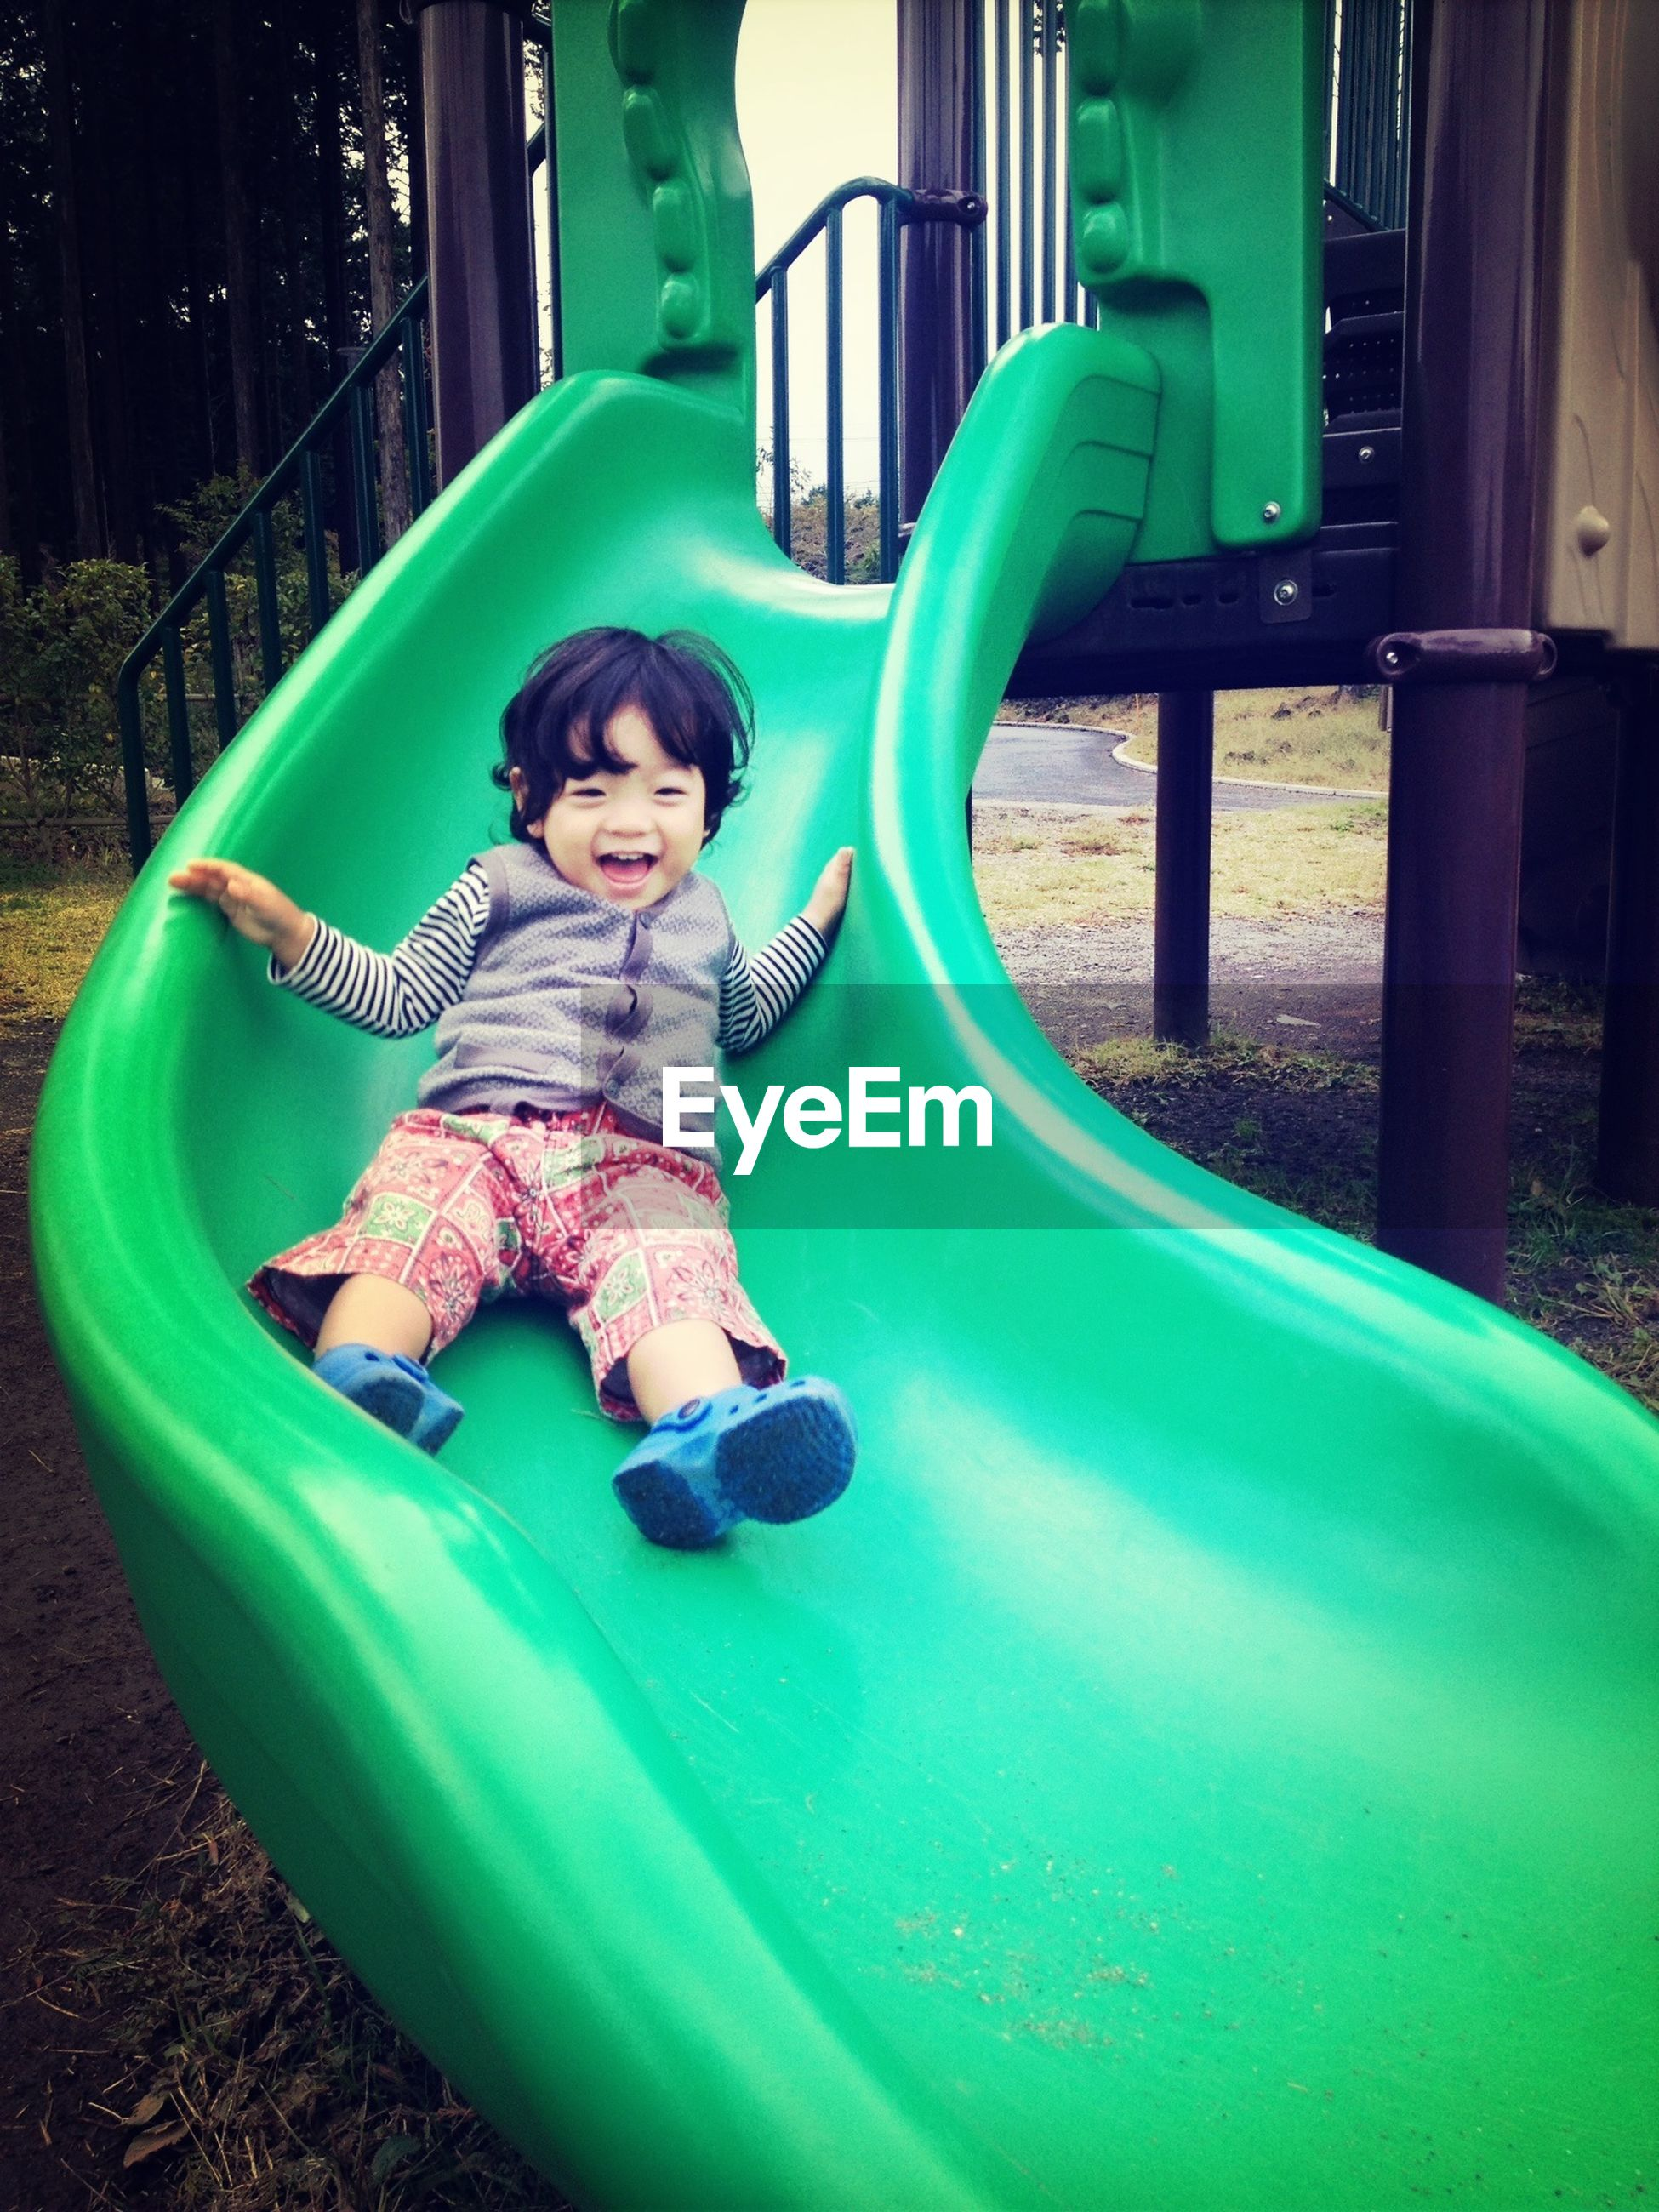 childhood, person, elementary age, full length, lifestyles, leisure activity, innocence, casual clothing, boys, girls, cute, sitting, playing, looking at camera, playful, portrait, fun, happiness